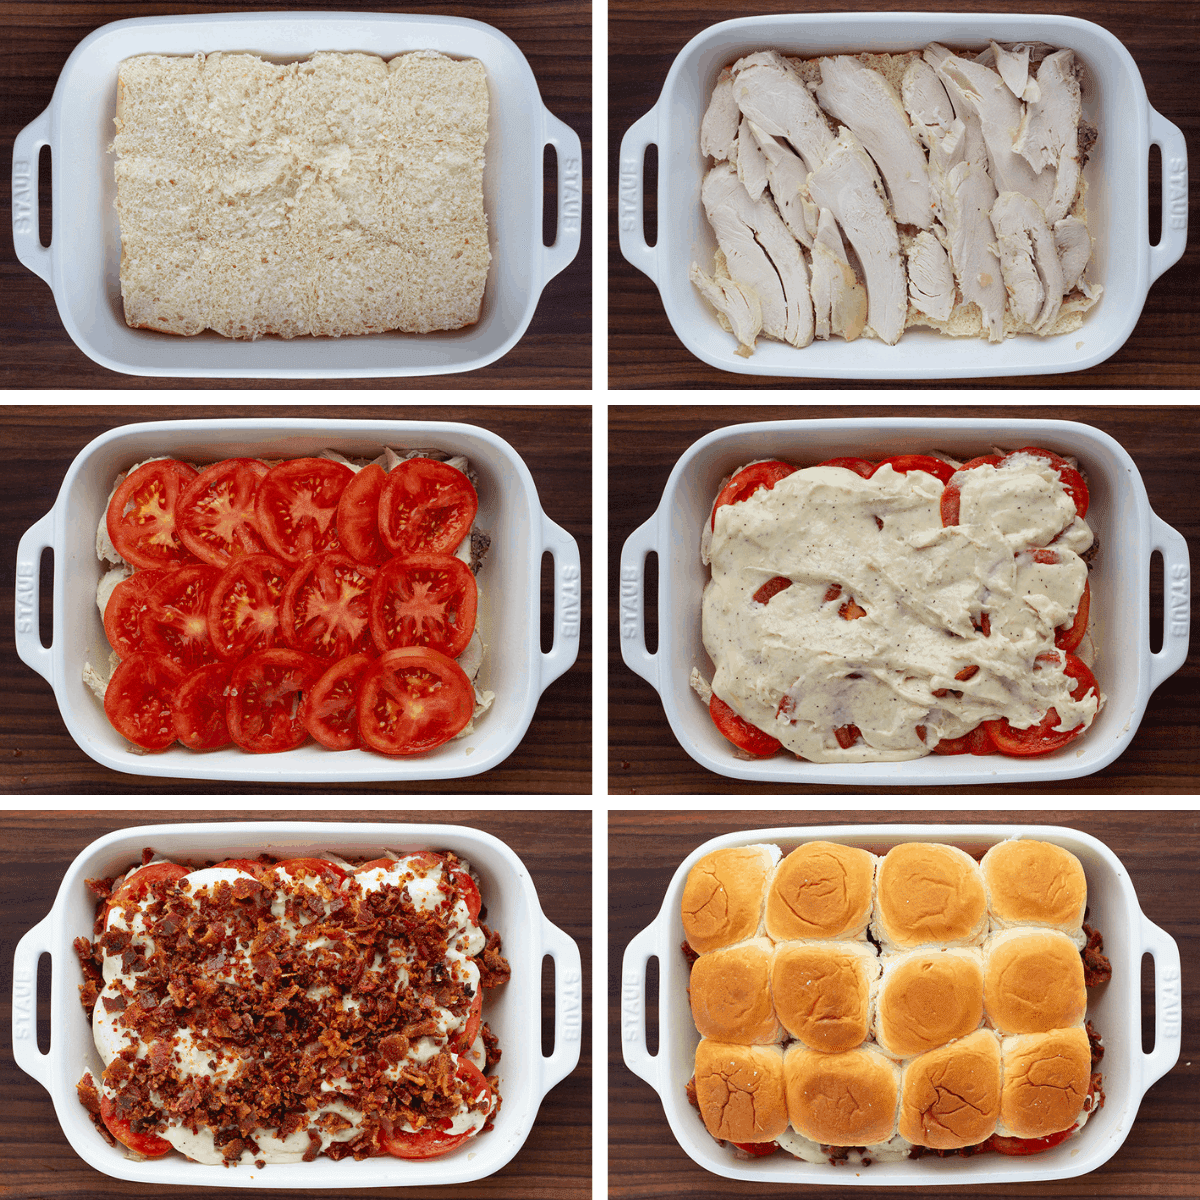 Process for Adding Ingredients to Kentucky Hot Brown Sliders